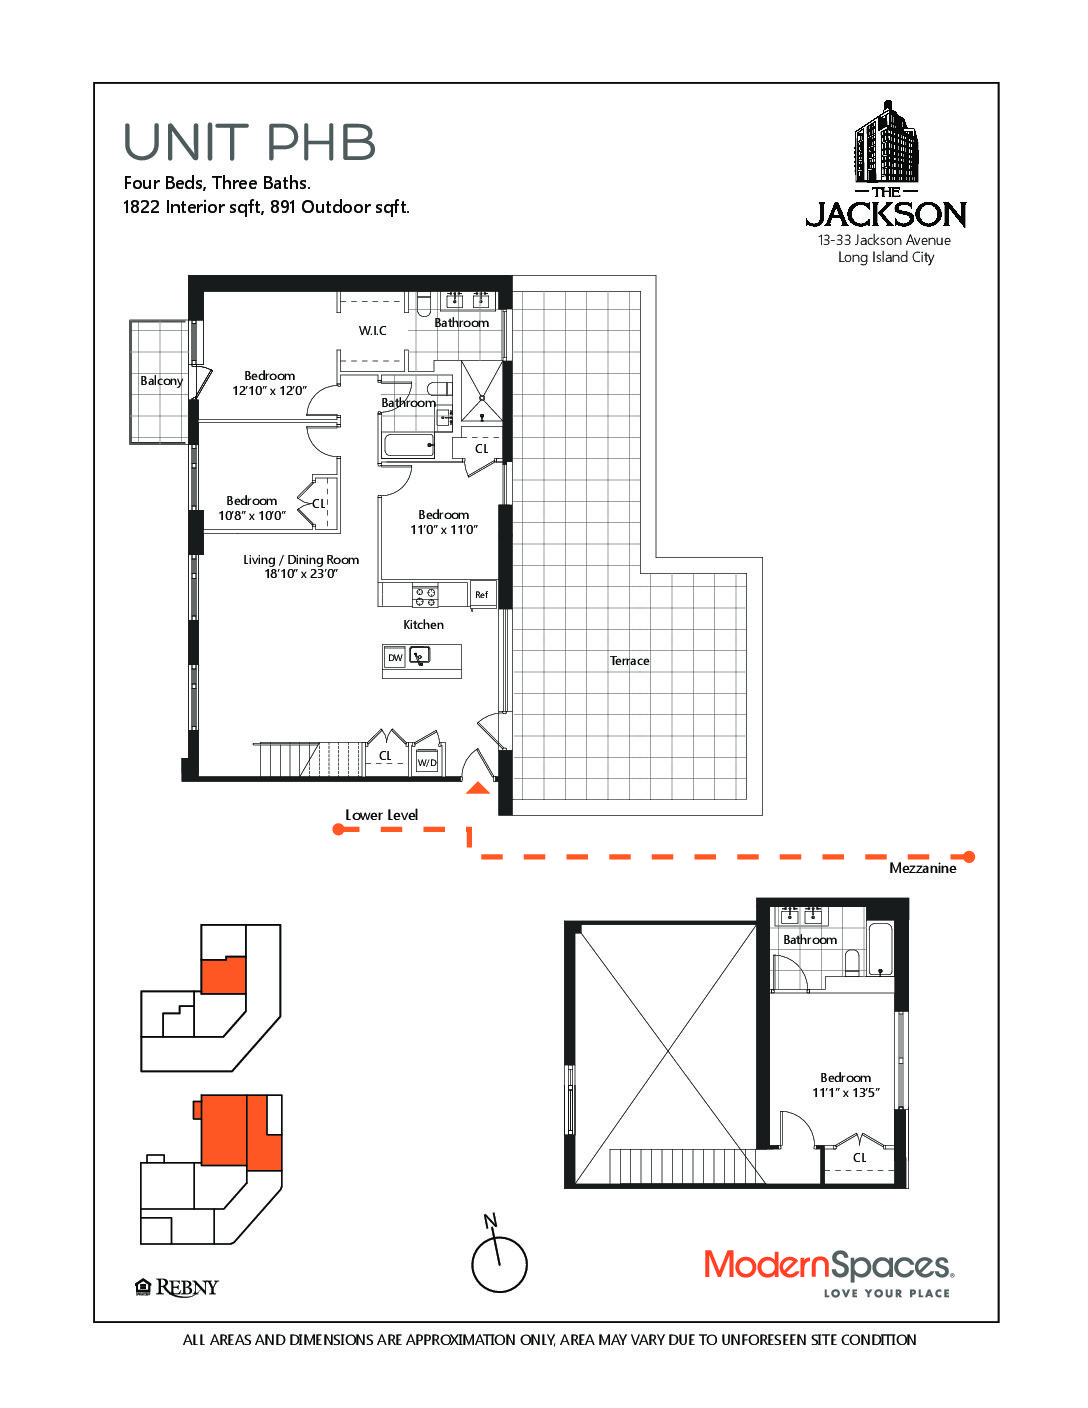 11 51 47th Avenue Ph At The Jackson Is A 4 Bedroom Condo